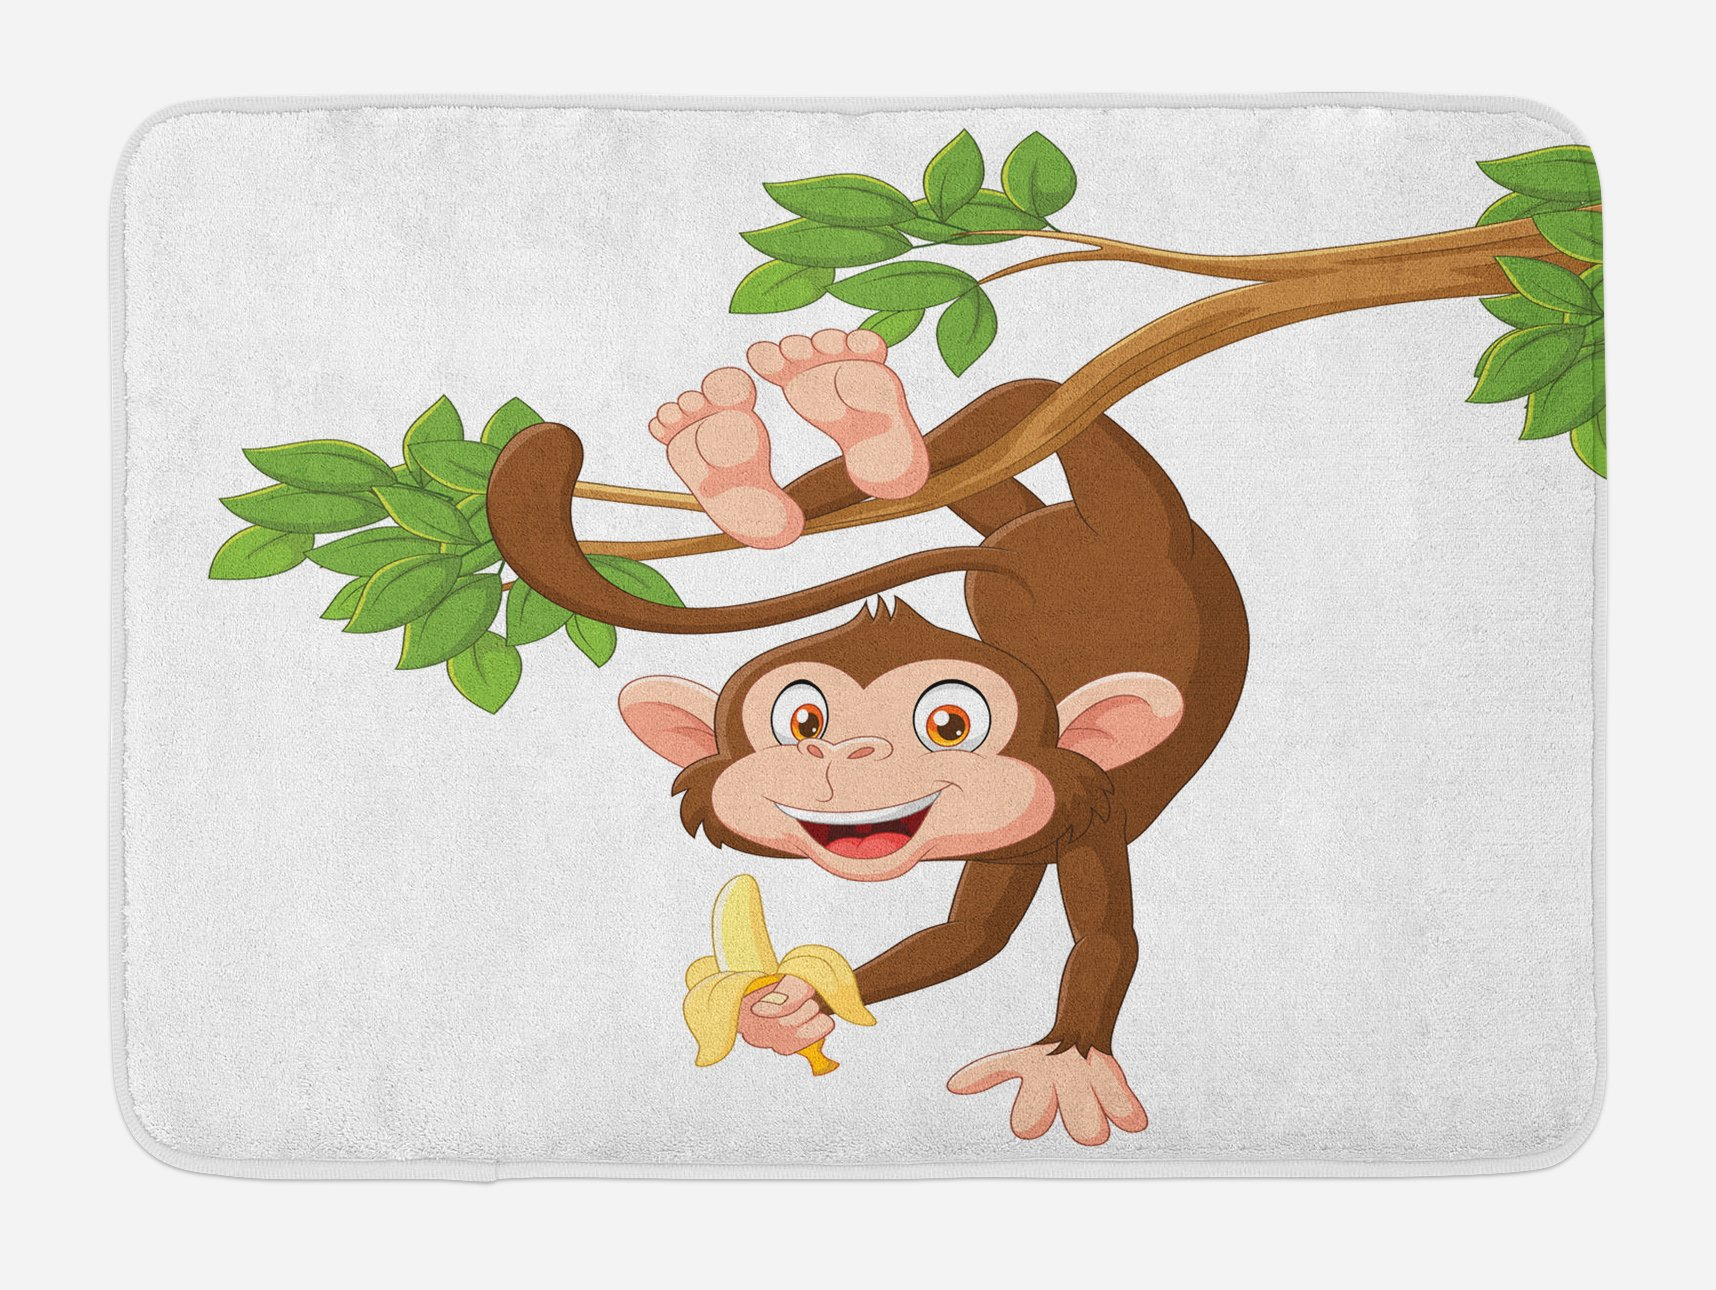 Ambesonne Cartoon Bath Mat, Funny Monkey Hanging from Tree and Holding Banana Jungle Animals Theme Print, Plush Bathroom Decor Mat with Non Slip Backing, 29.5 W X 17.5 W Inches, Chocolate White